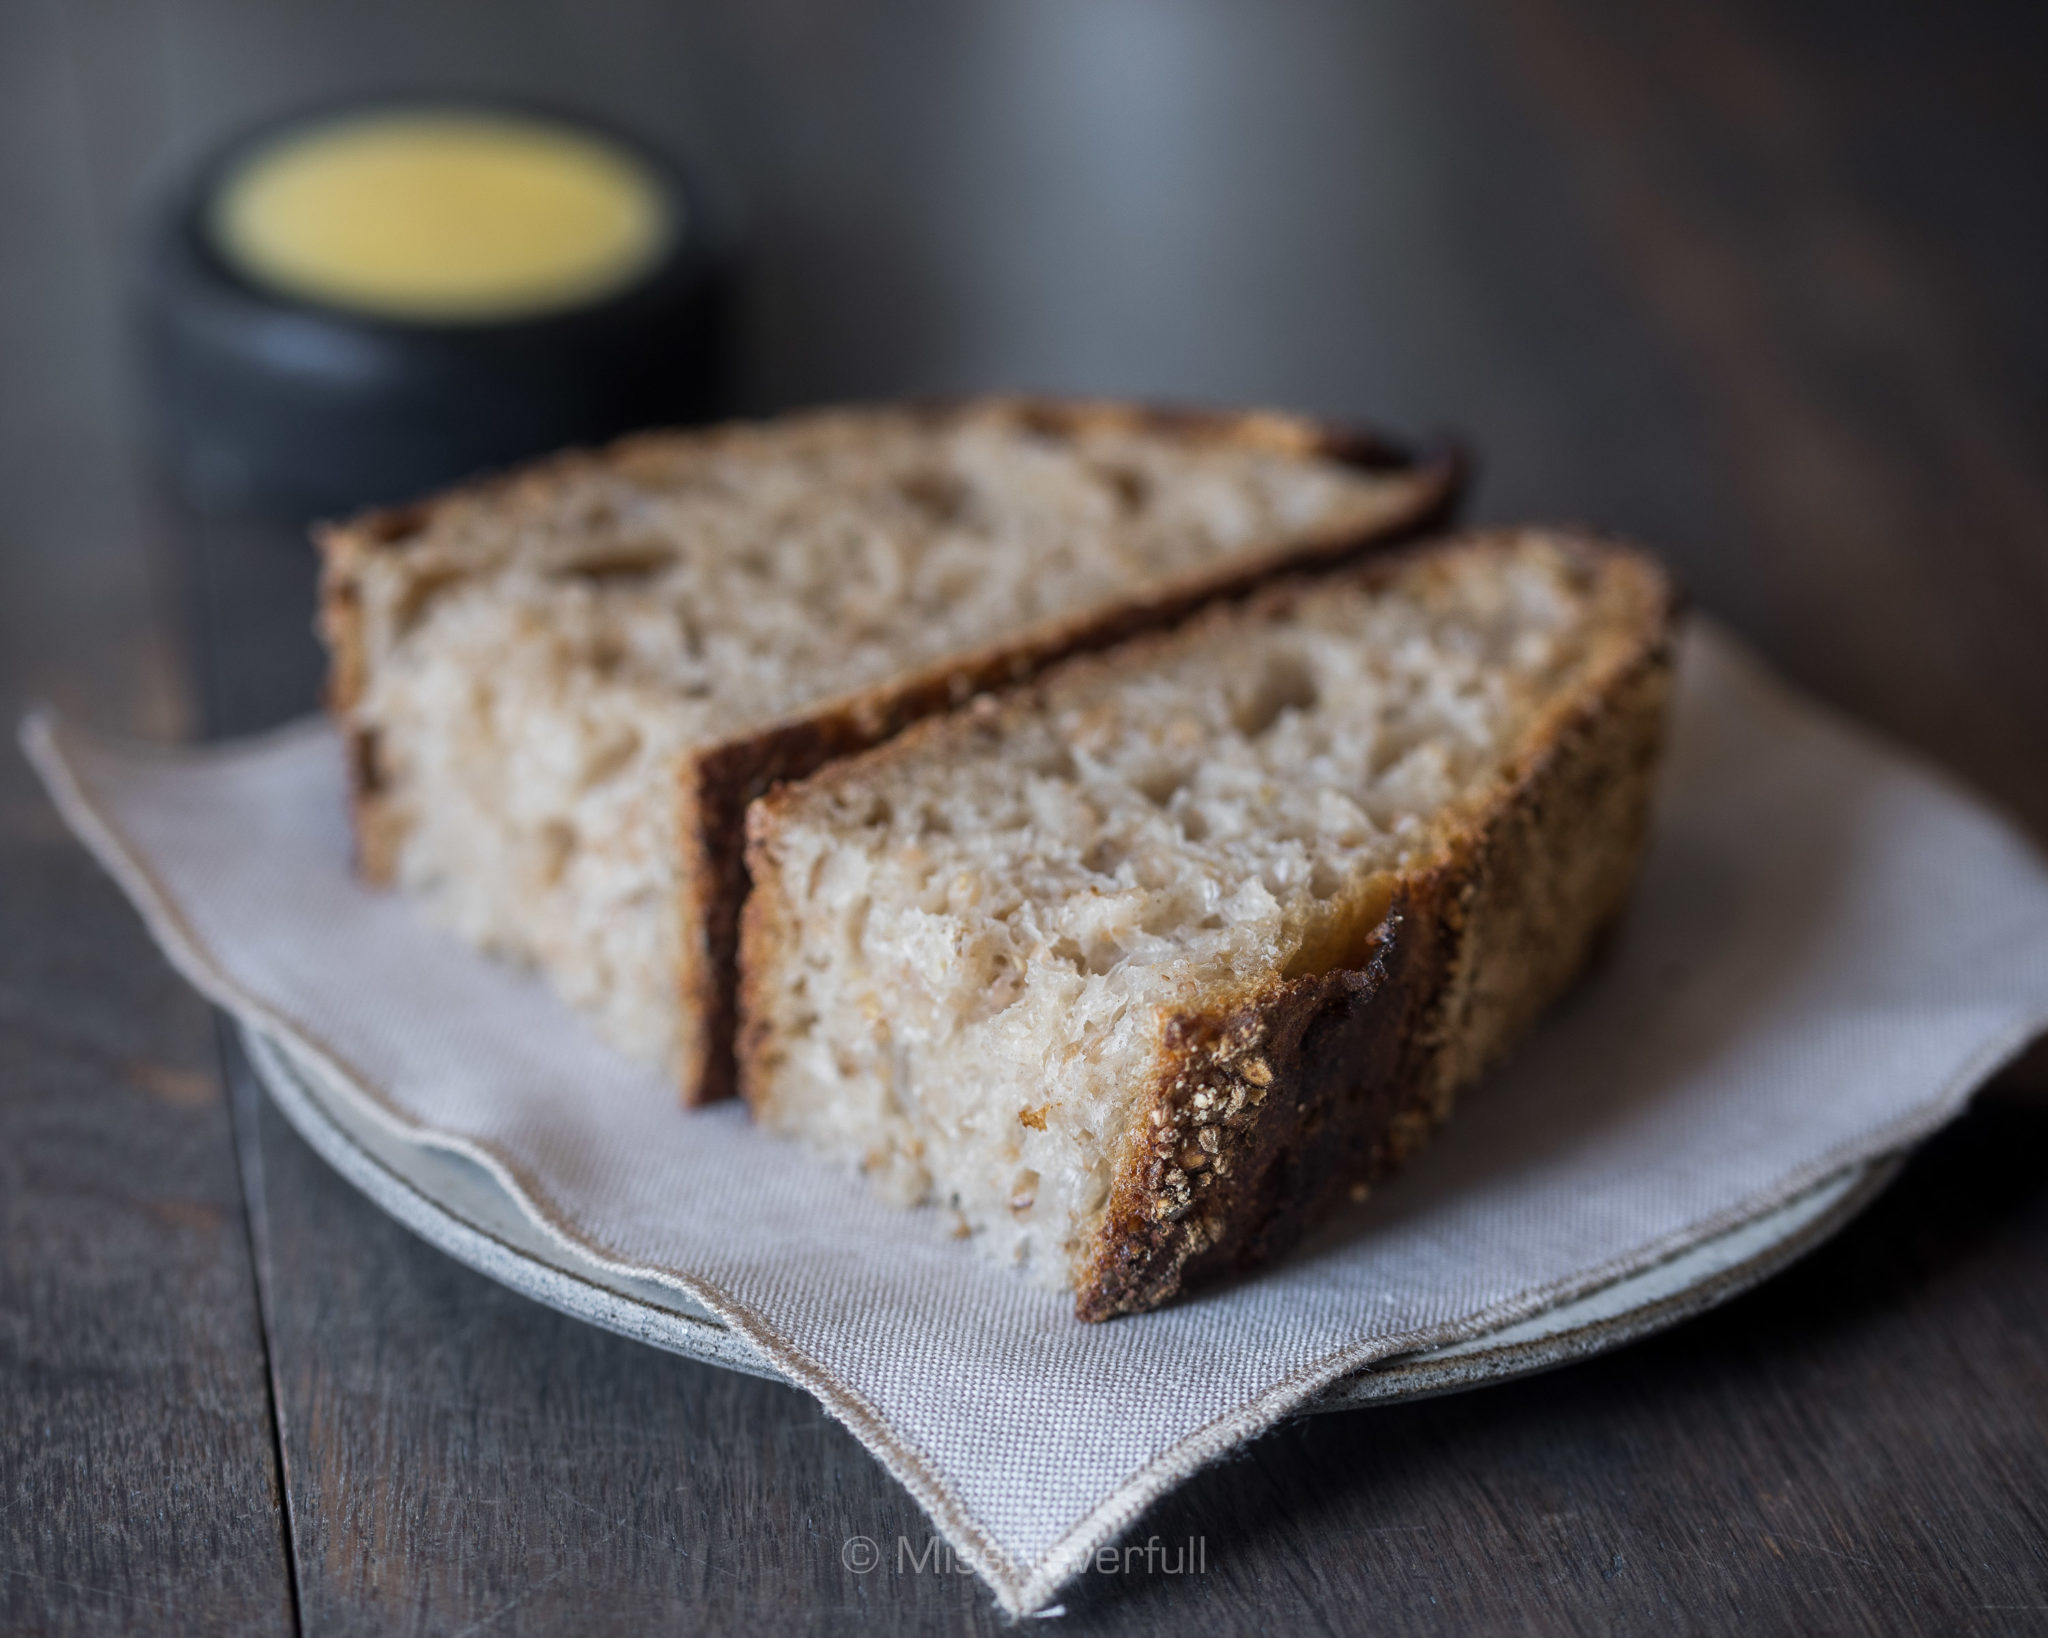 5. Natural fermented bread of Oland wheat and hulless barley